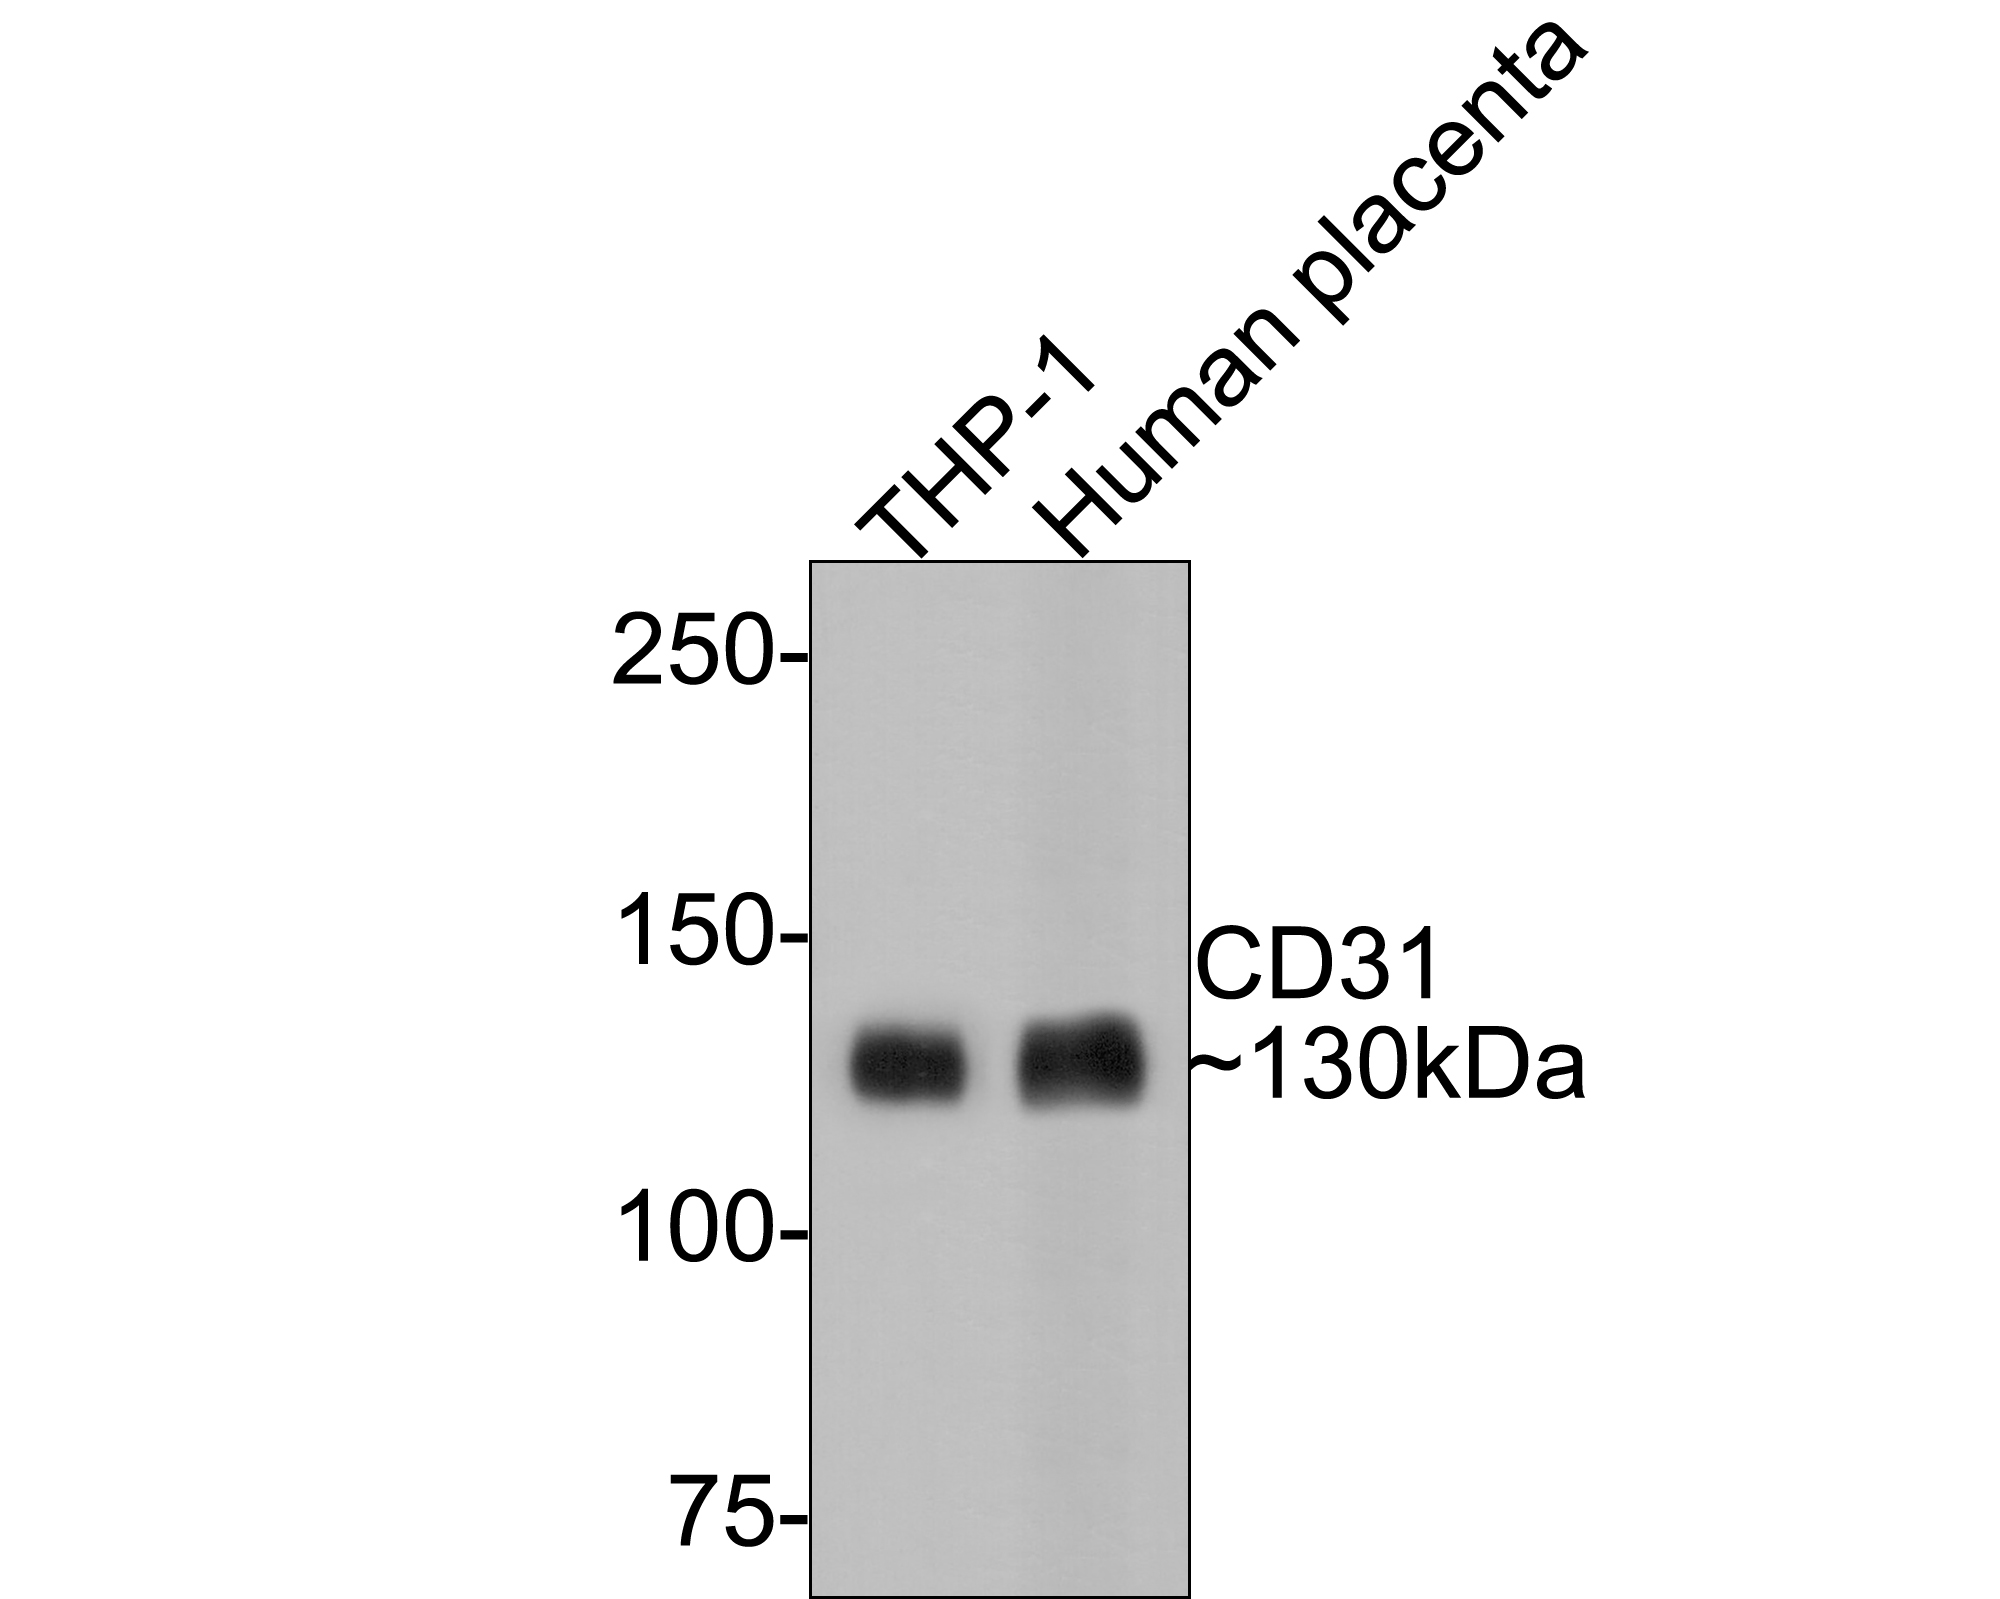 Western blot analysis of CD31 on different lysates. Proteins were transferred to a PVDF membrane and blocked with 5% BSA in PBS for 1 hour at room temperature. The primary antibody (ET1608-48, 1/500) was used in 5% BSA at room temperature for 2 hours. Goat Anti-Rabbit IgG - HRP Secondary Antibody (HA1001) at 1:5,000 dilution was used for 1 hour at room temperature.<br /> Positive control: <br /> Lane 1: THP-1 cell lysate<br /> Lane 2: human placenta tissue lysate